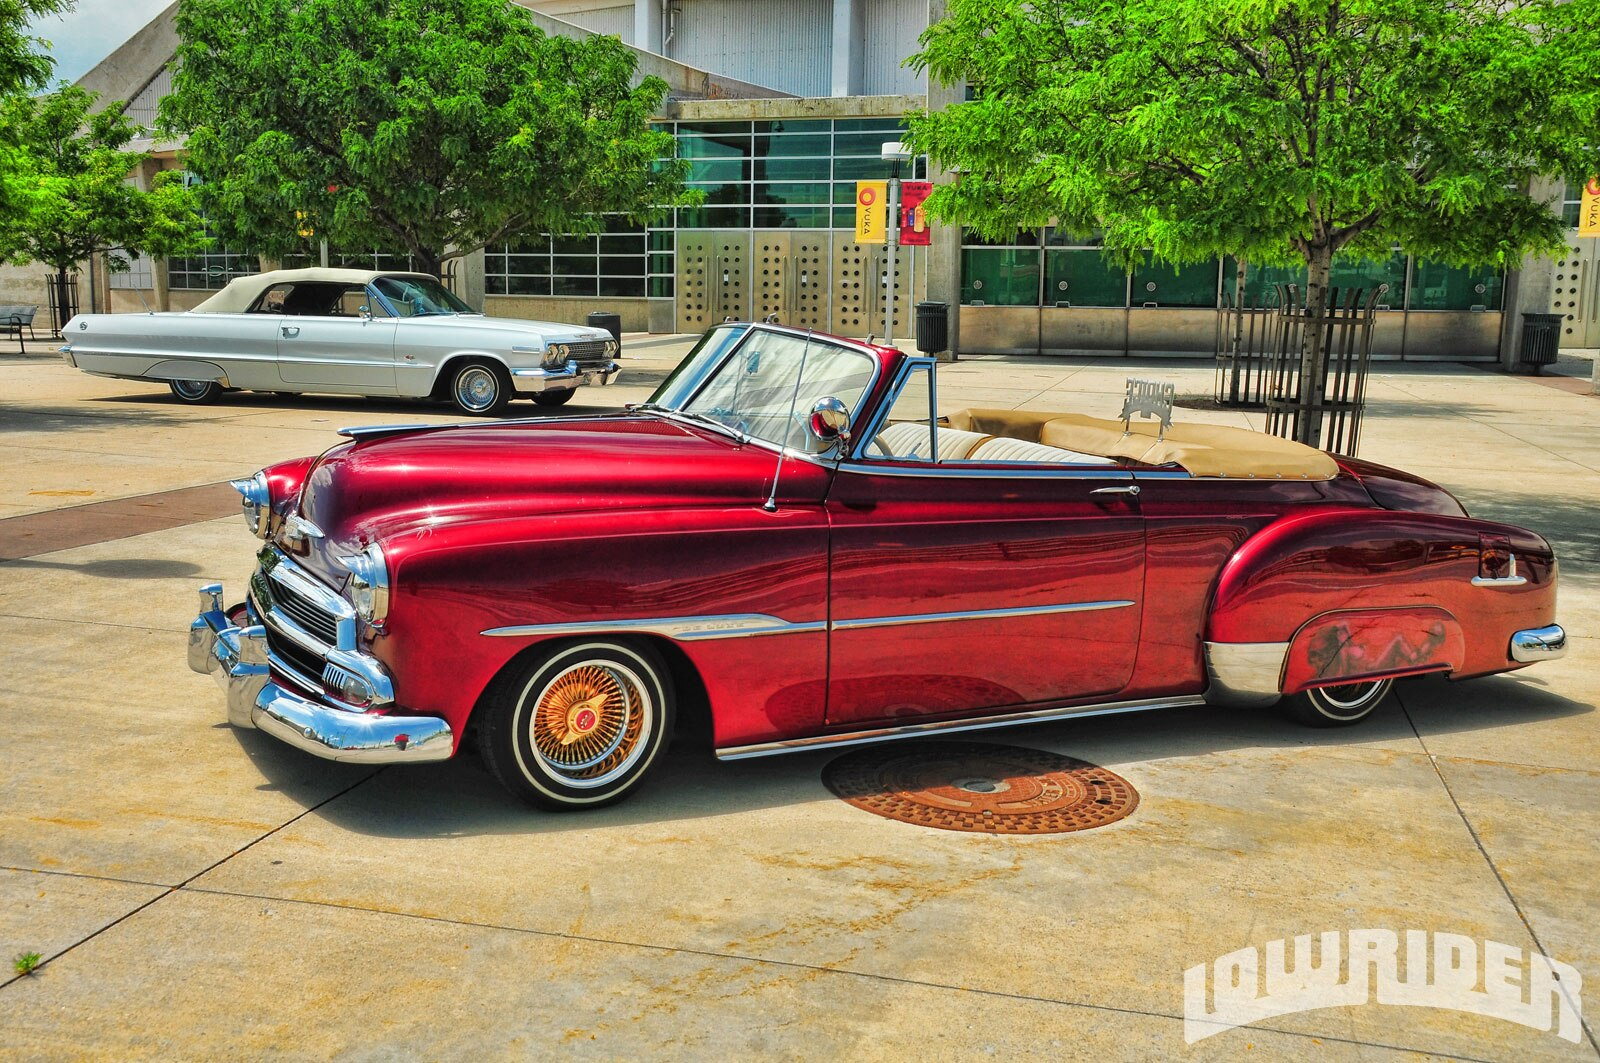 1204-lrmp-09-o-1951-chevrolet-deluxe-convertible-driver-side-view1